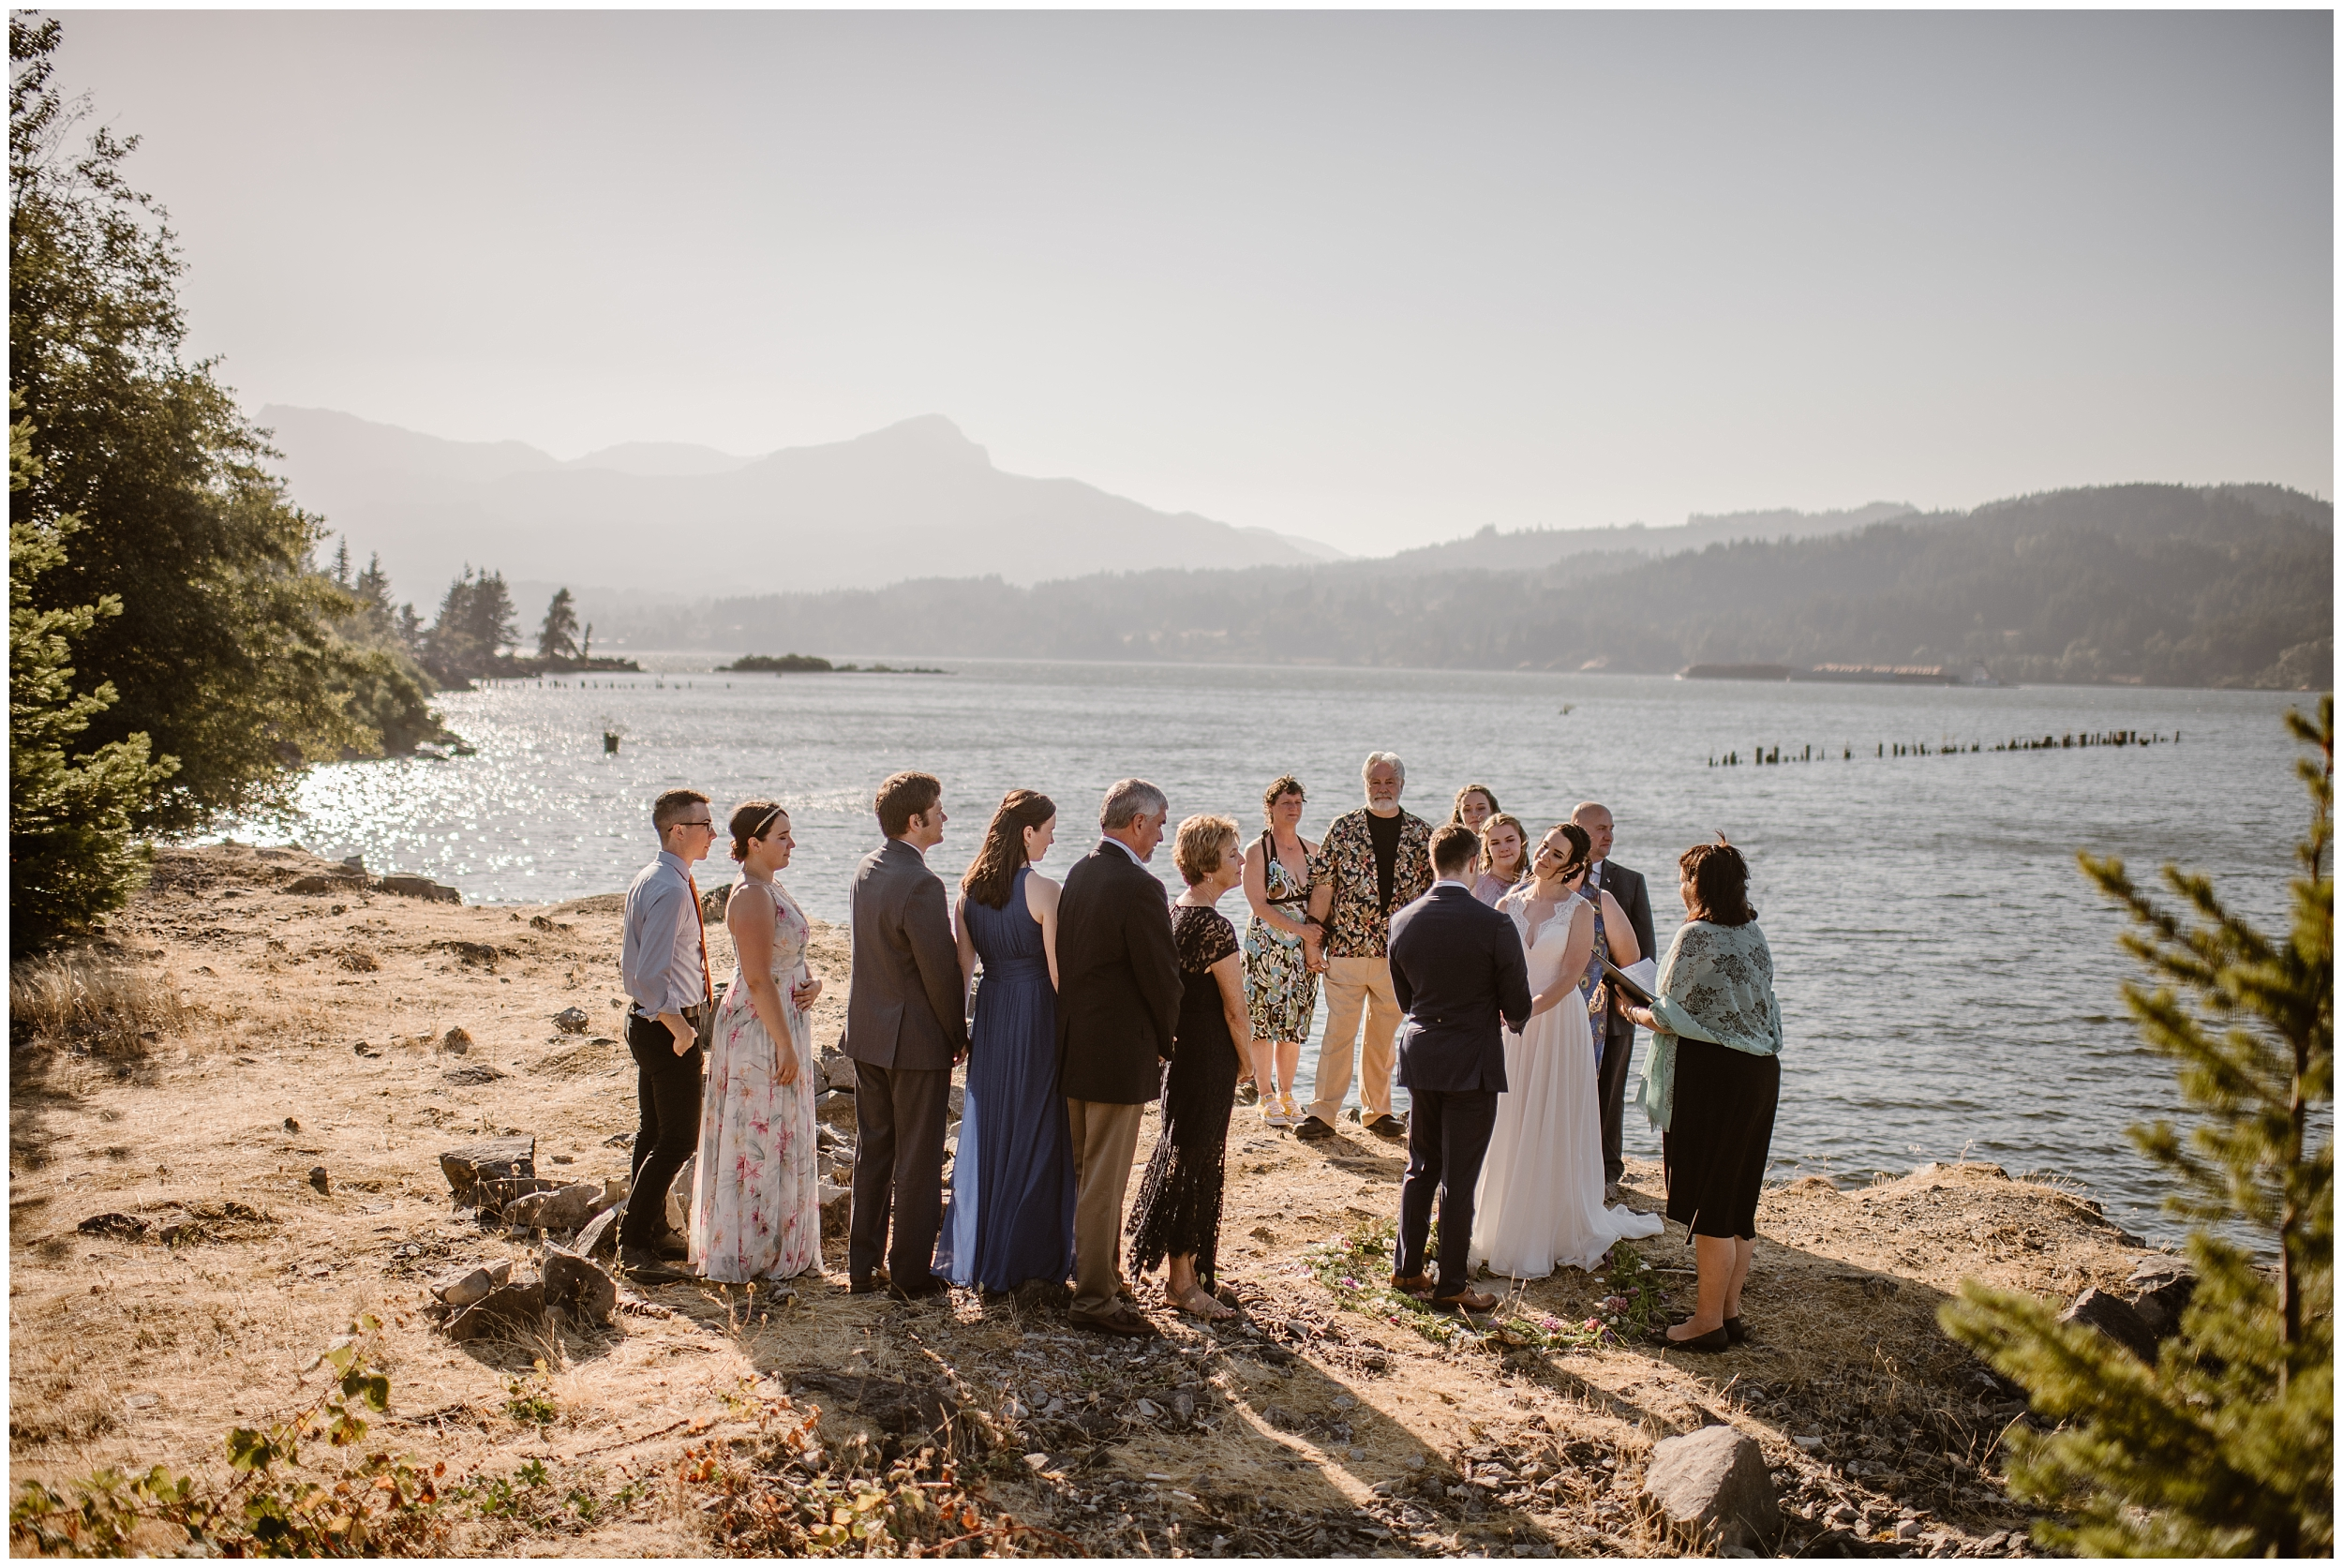 In these Oregon elopement photos, Lauryn and David's entire family is captured as they all stand on the banks of the Columbia River watching the elopement ceremony. In the background, mountain peaks and dark green trees can be seen.